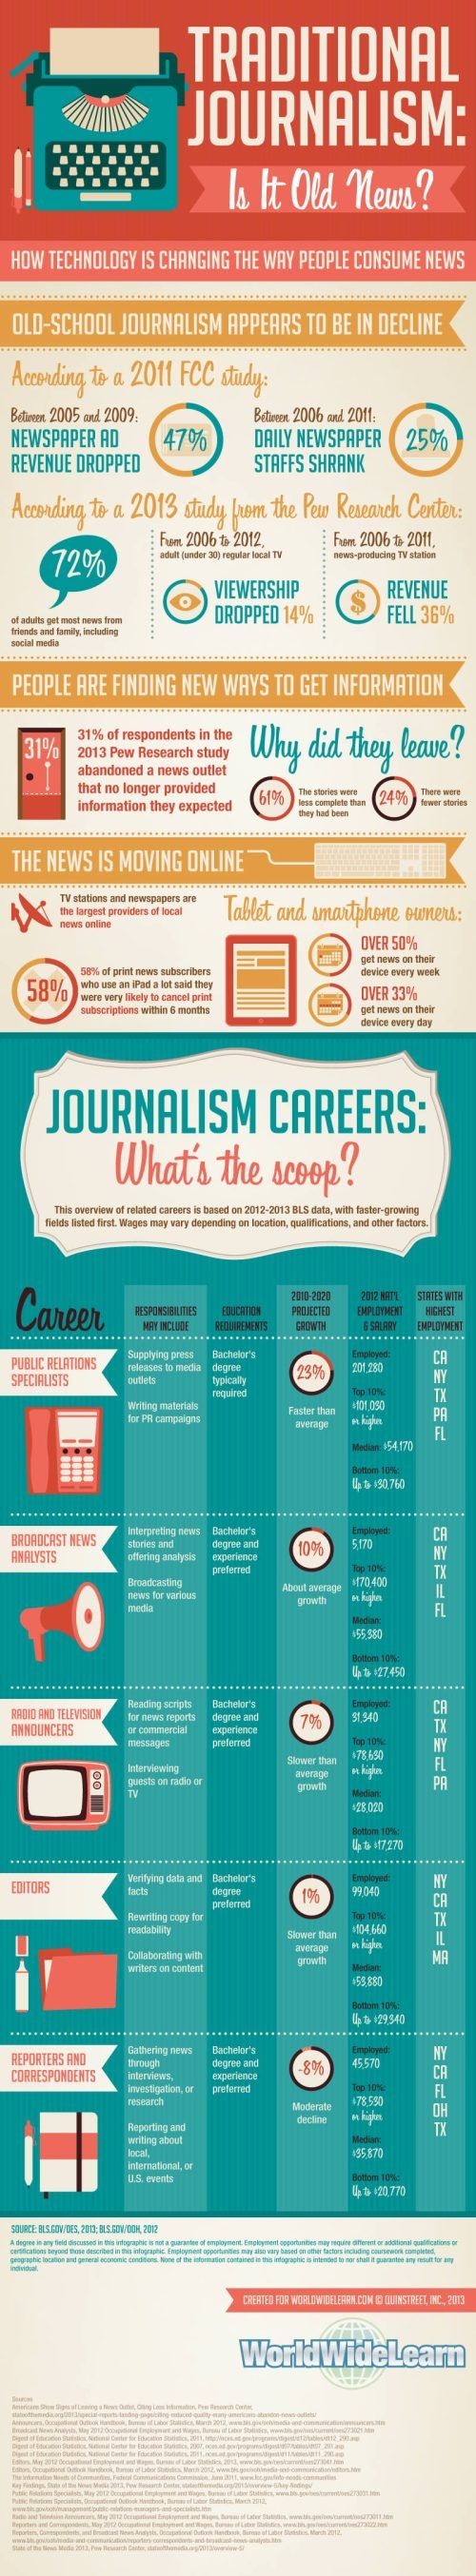 traditional-journalism-is-it-old-news #infographic